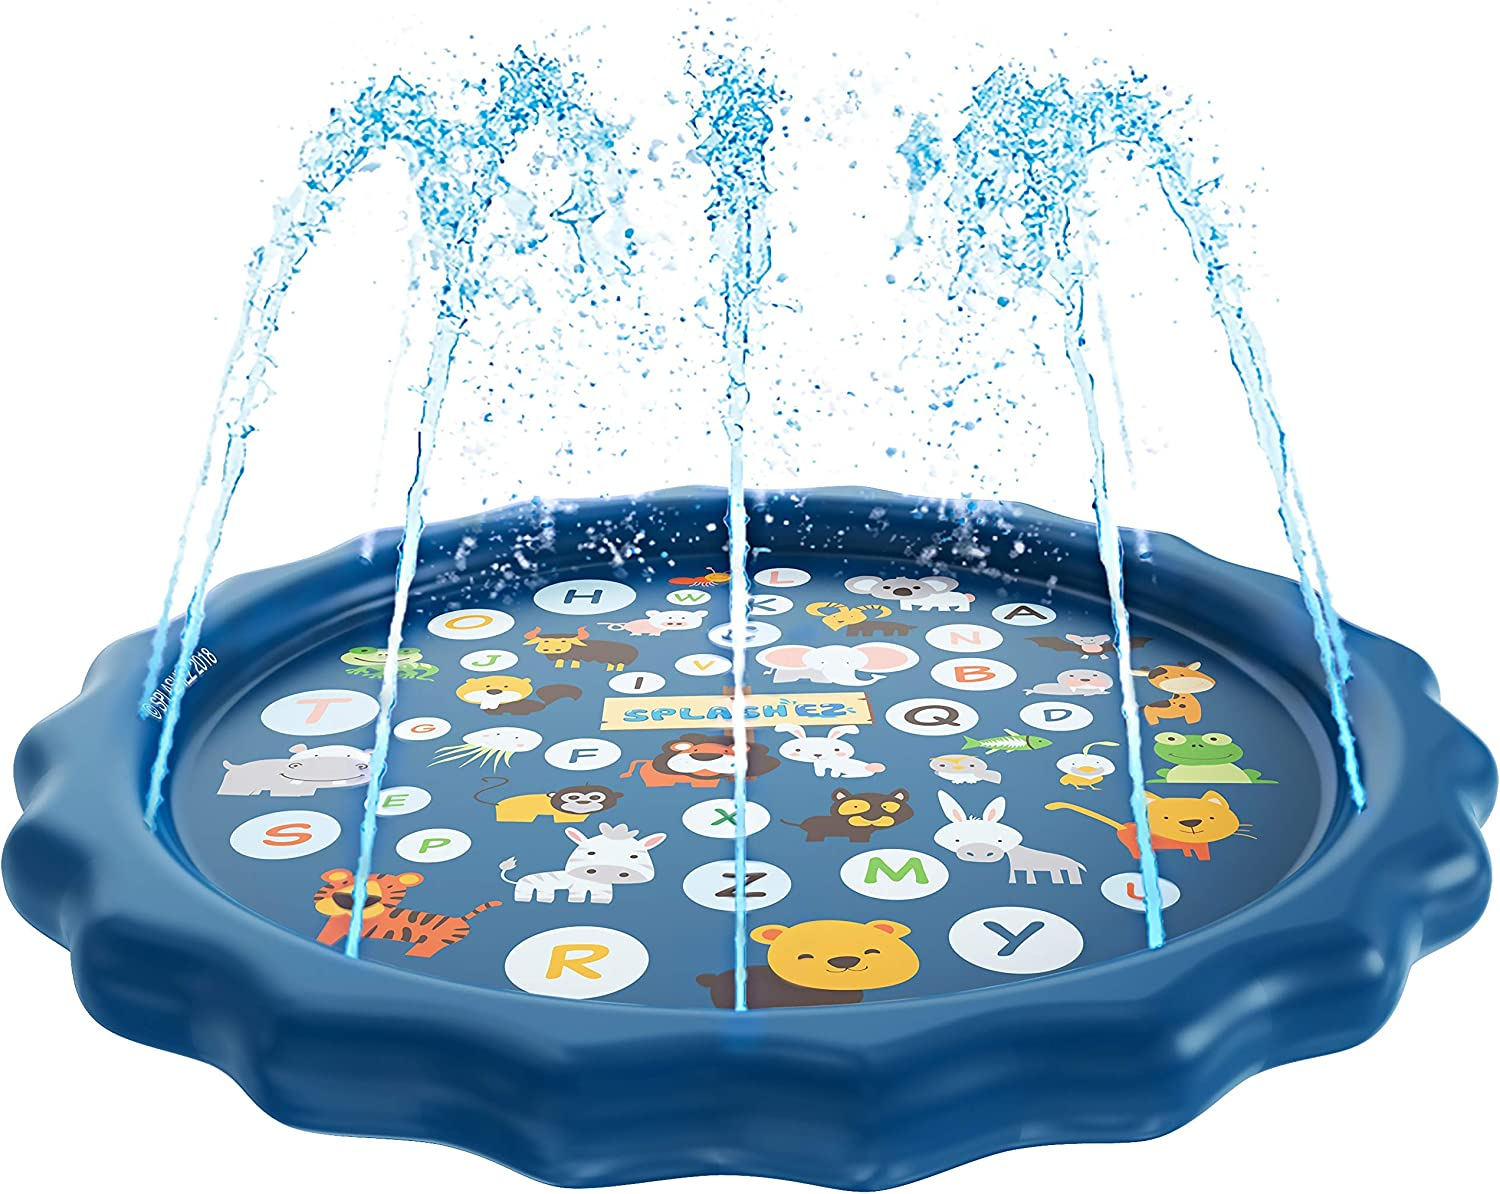 Learning Can Be Easier With SplashEZ 3-in-1 Sprinkler for Kids